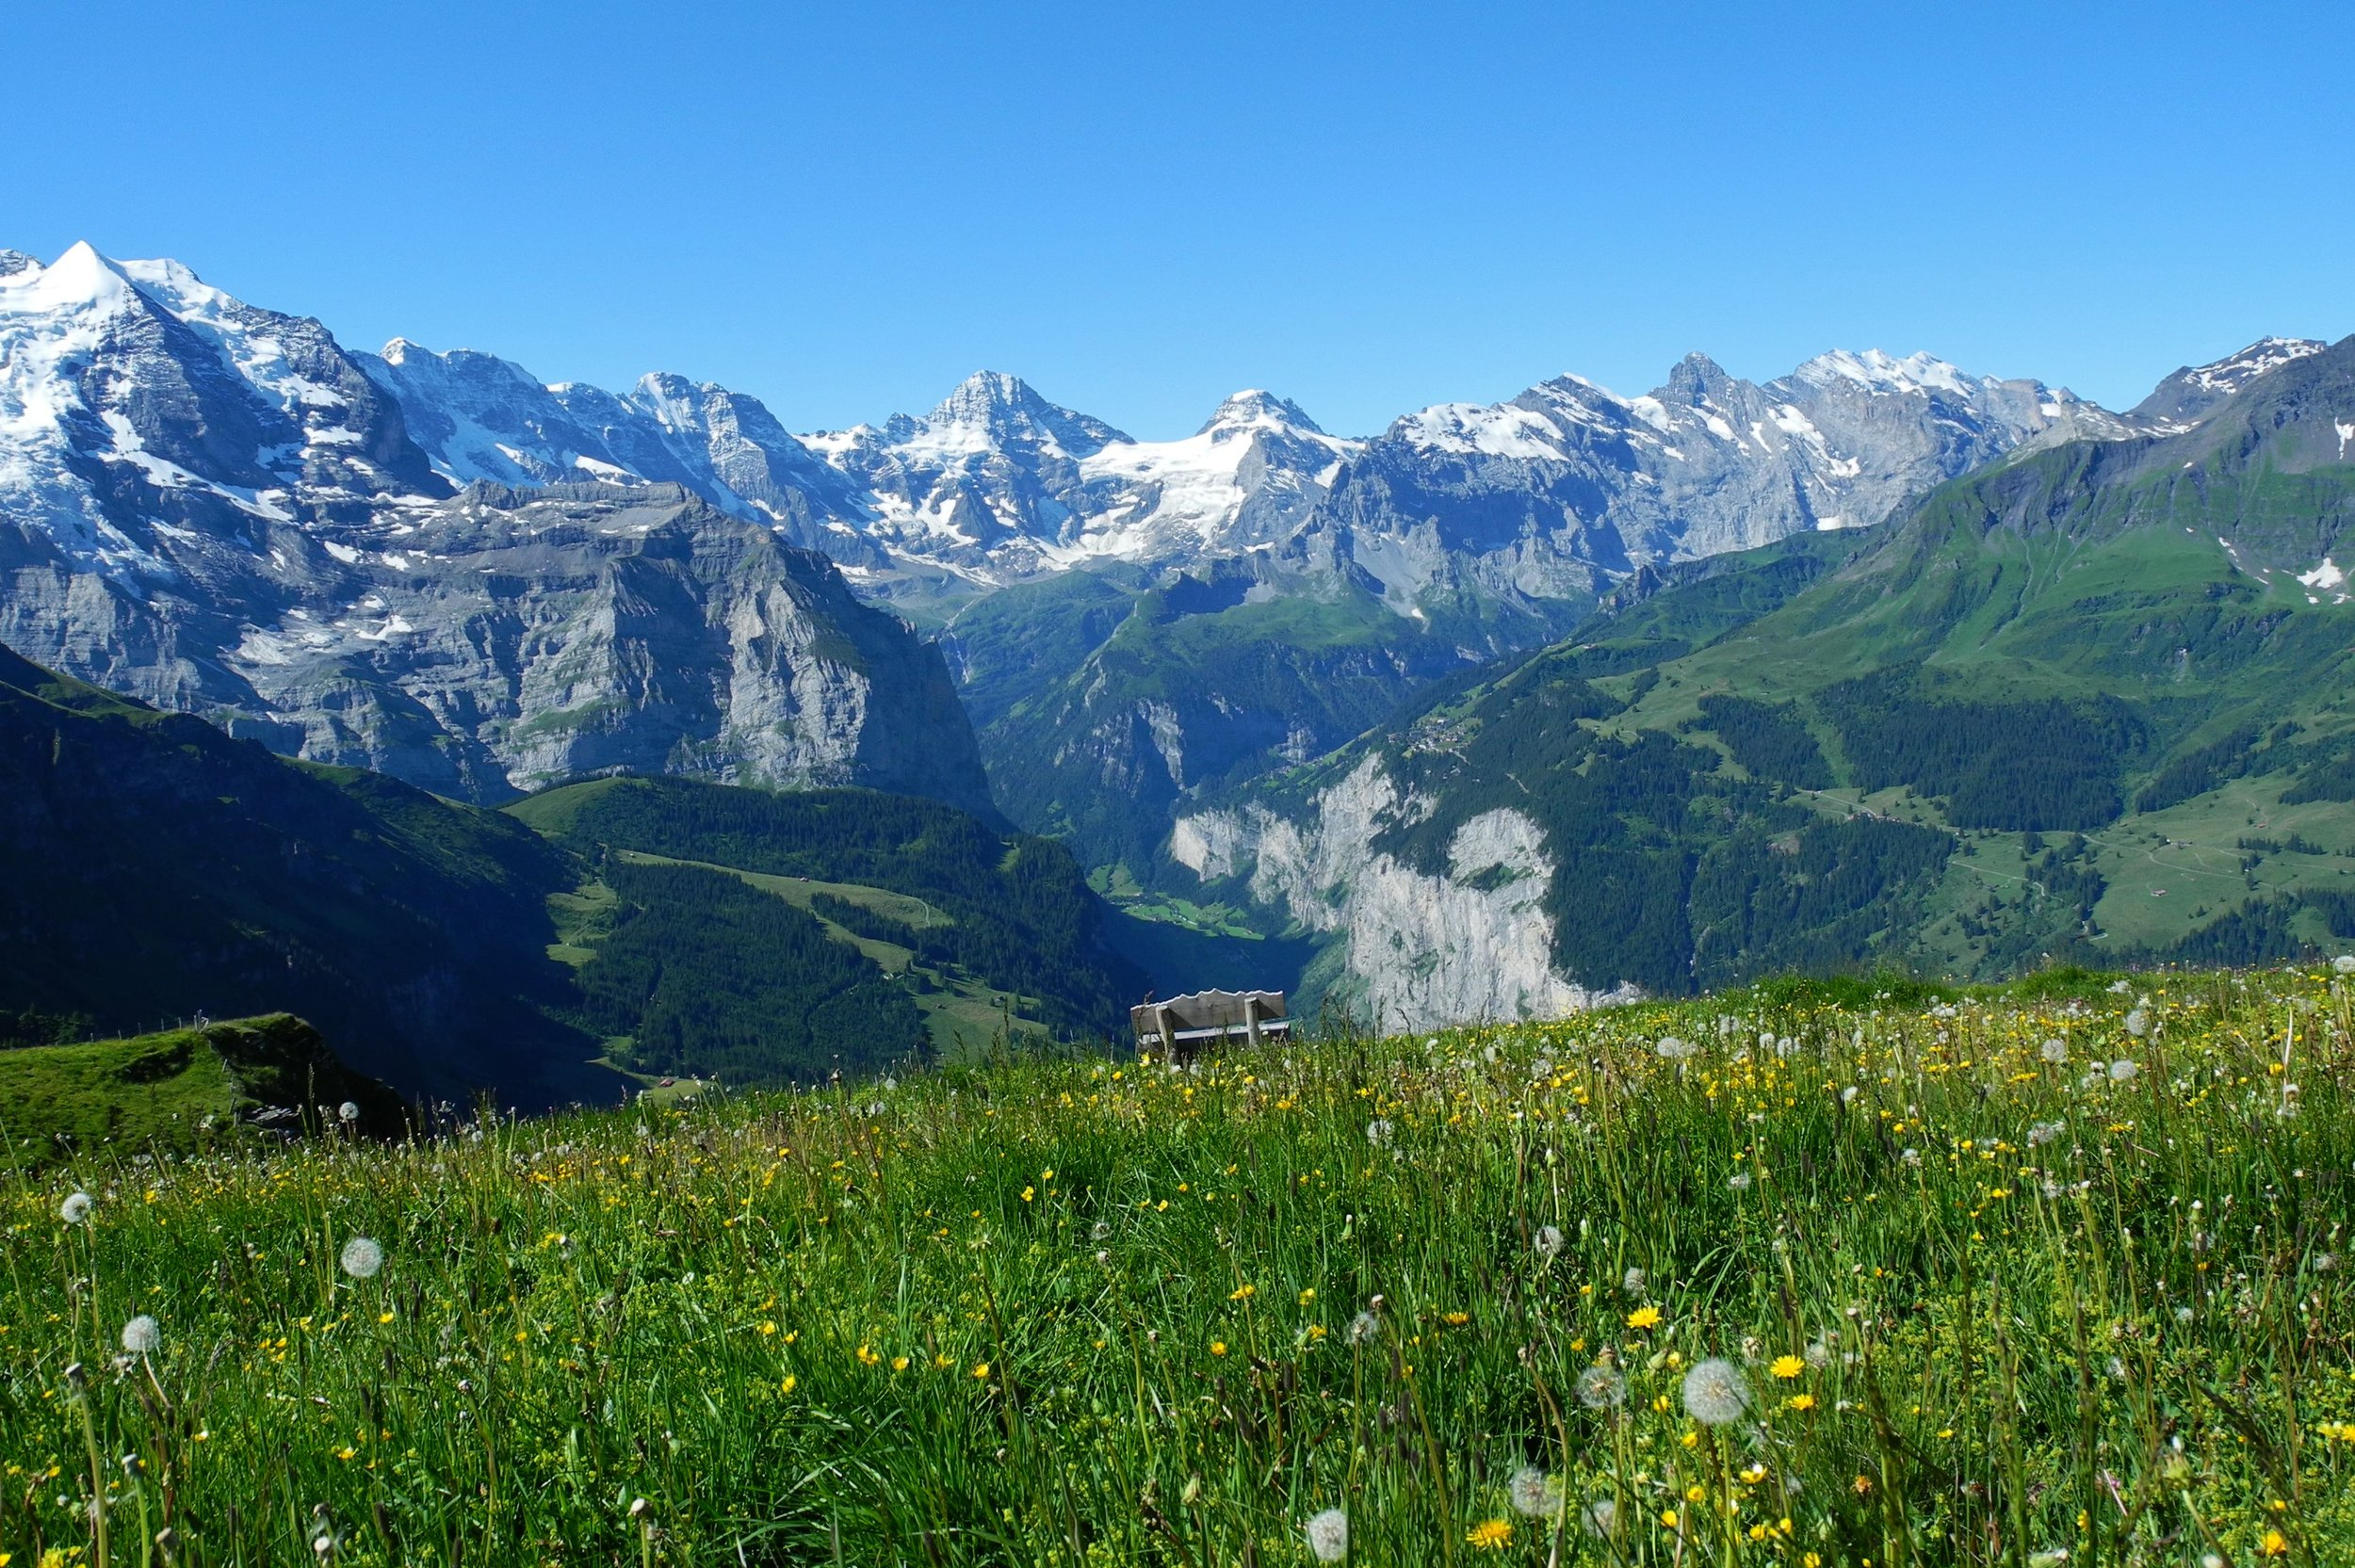 The Lazy Alps - Discover heavenly Wengen, a car-free village perched above a stunning Alpine valley.From £1,385